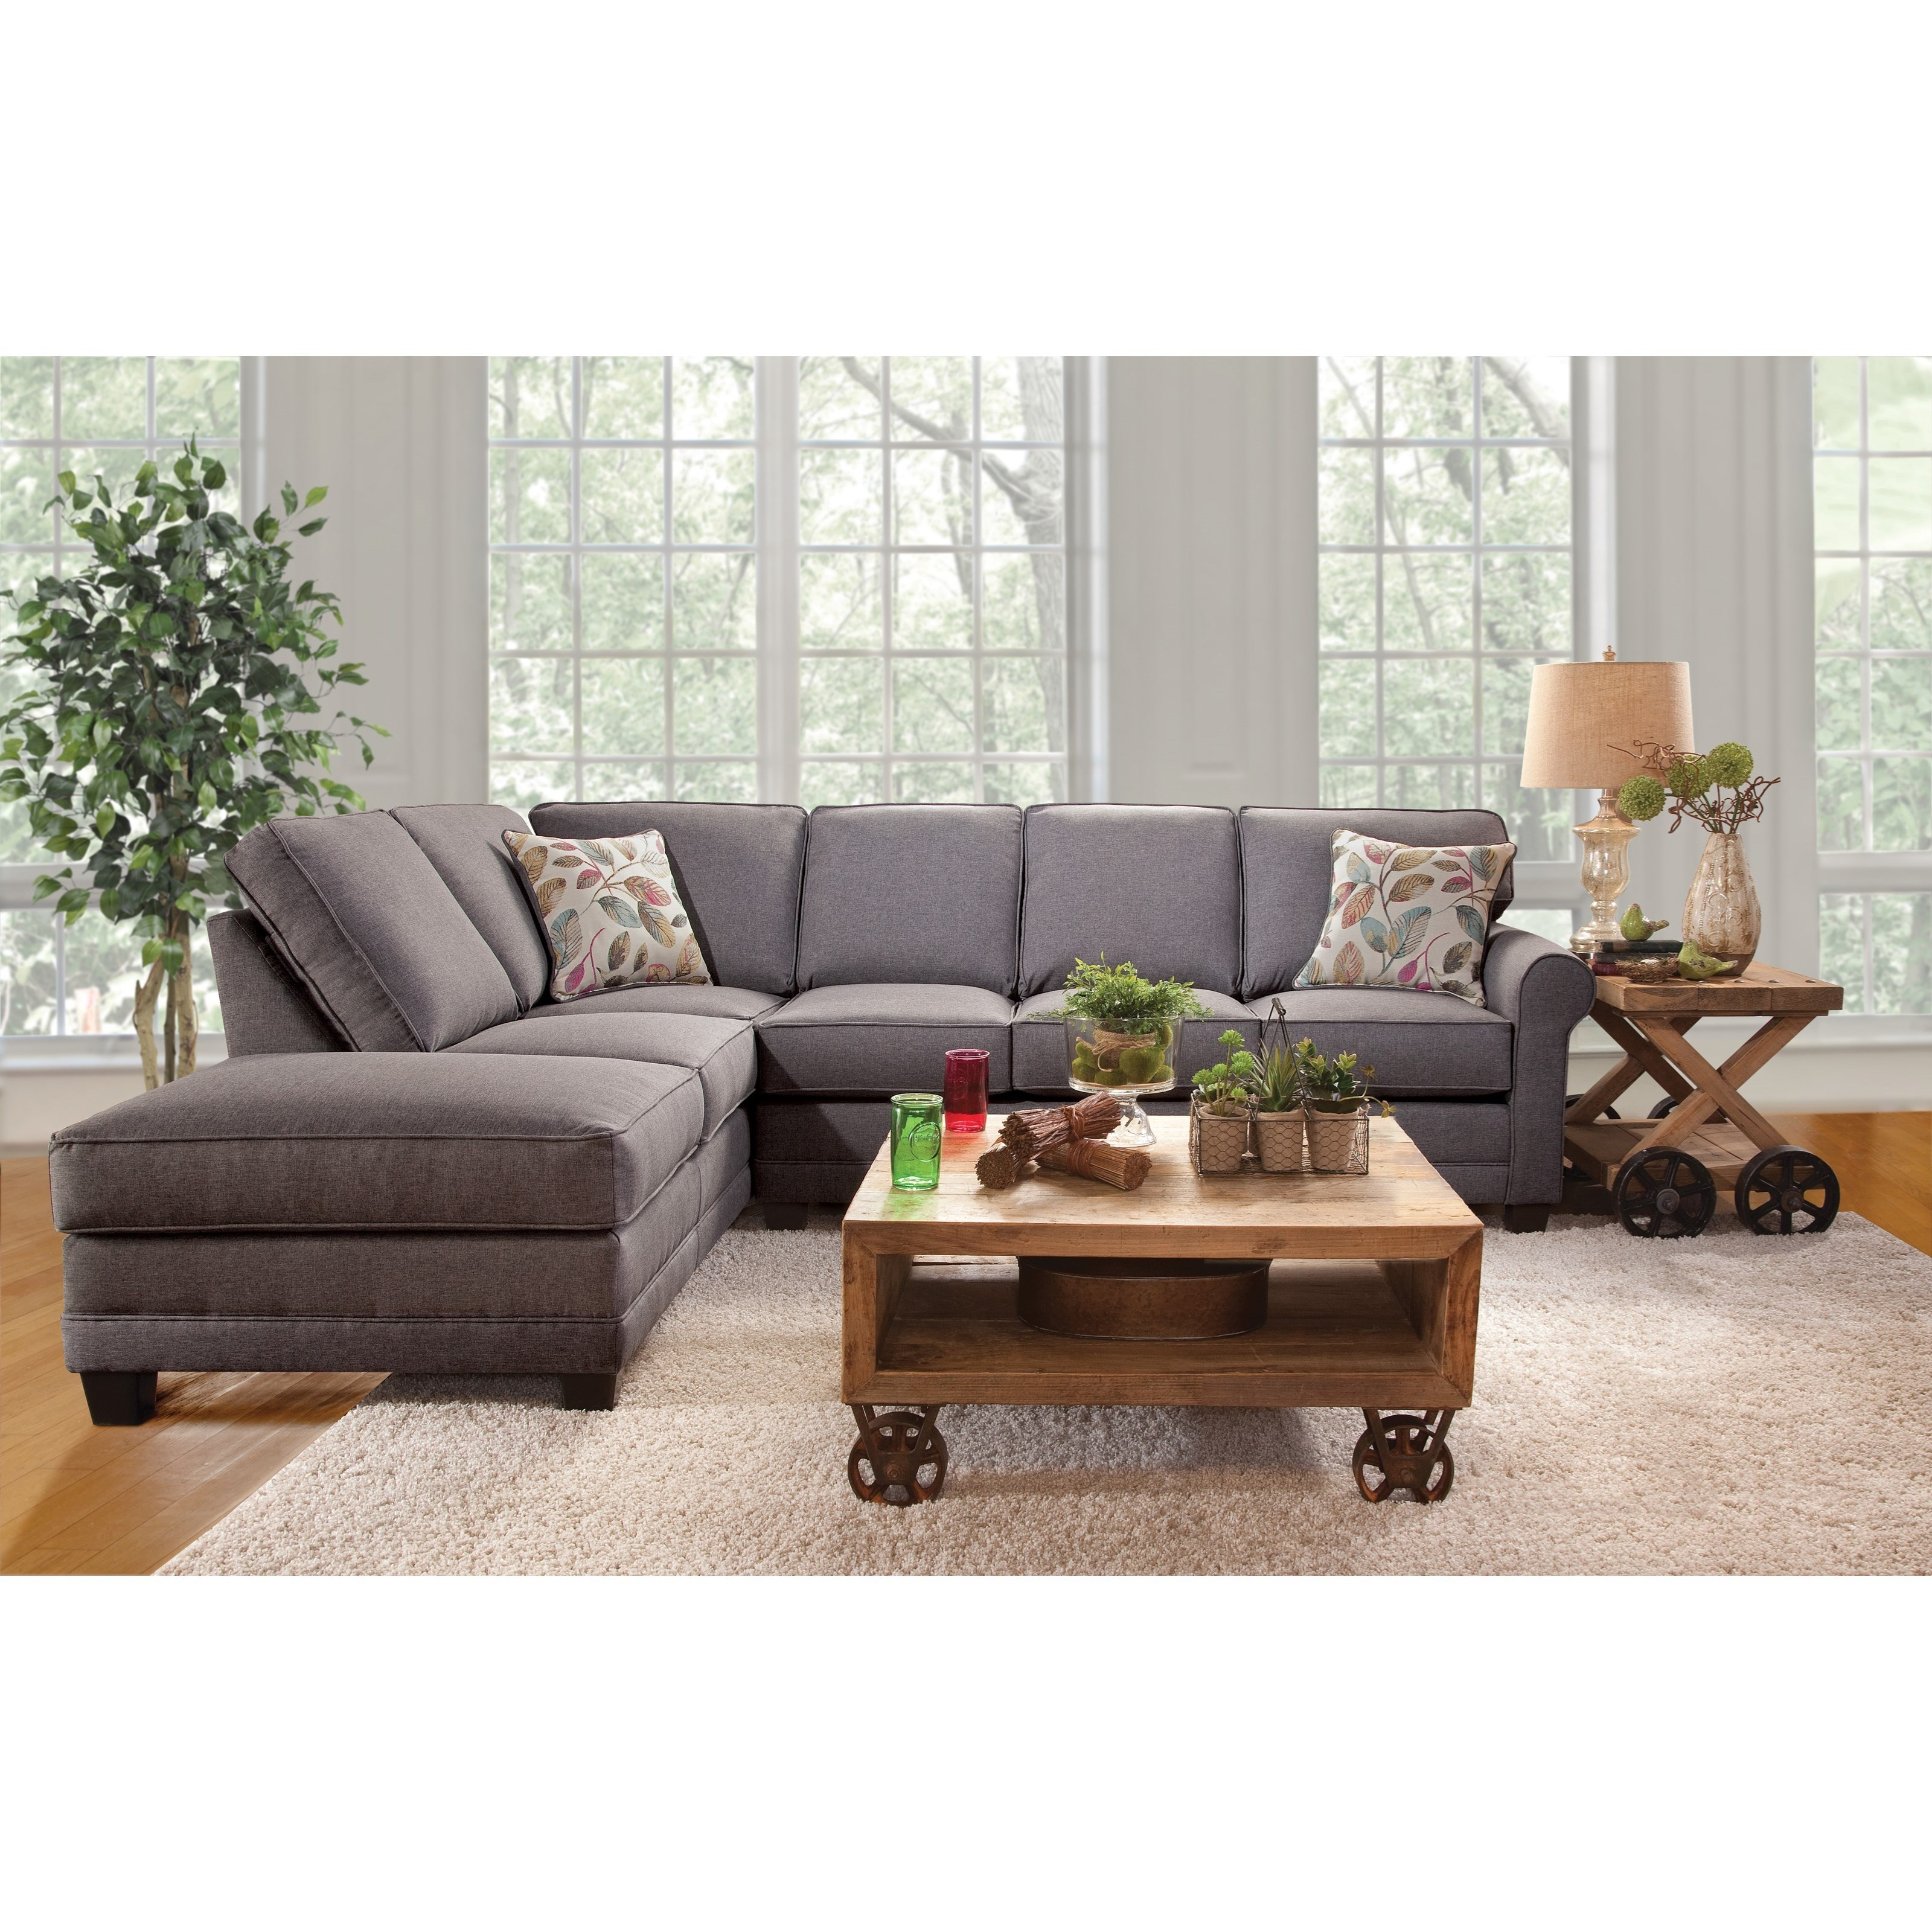 Genial 3700 Casual Sectional Sofa With Chaise By Serta Upholstery